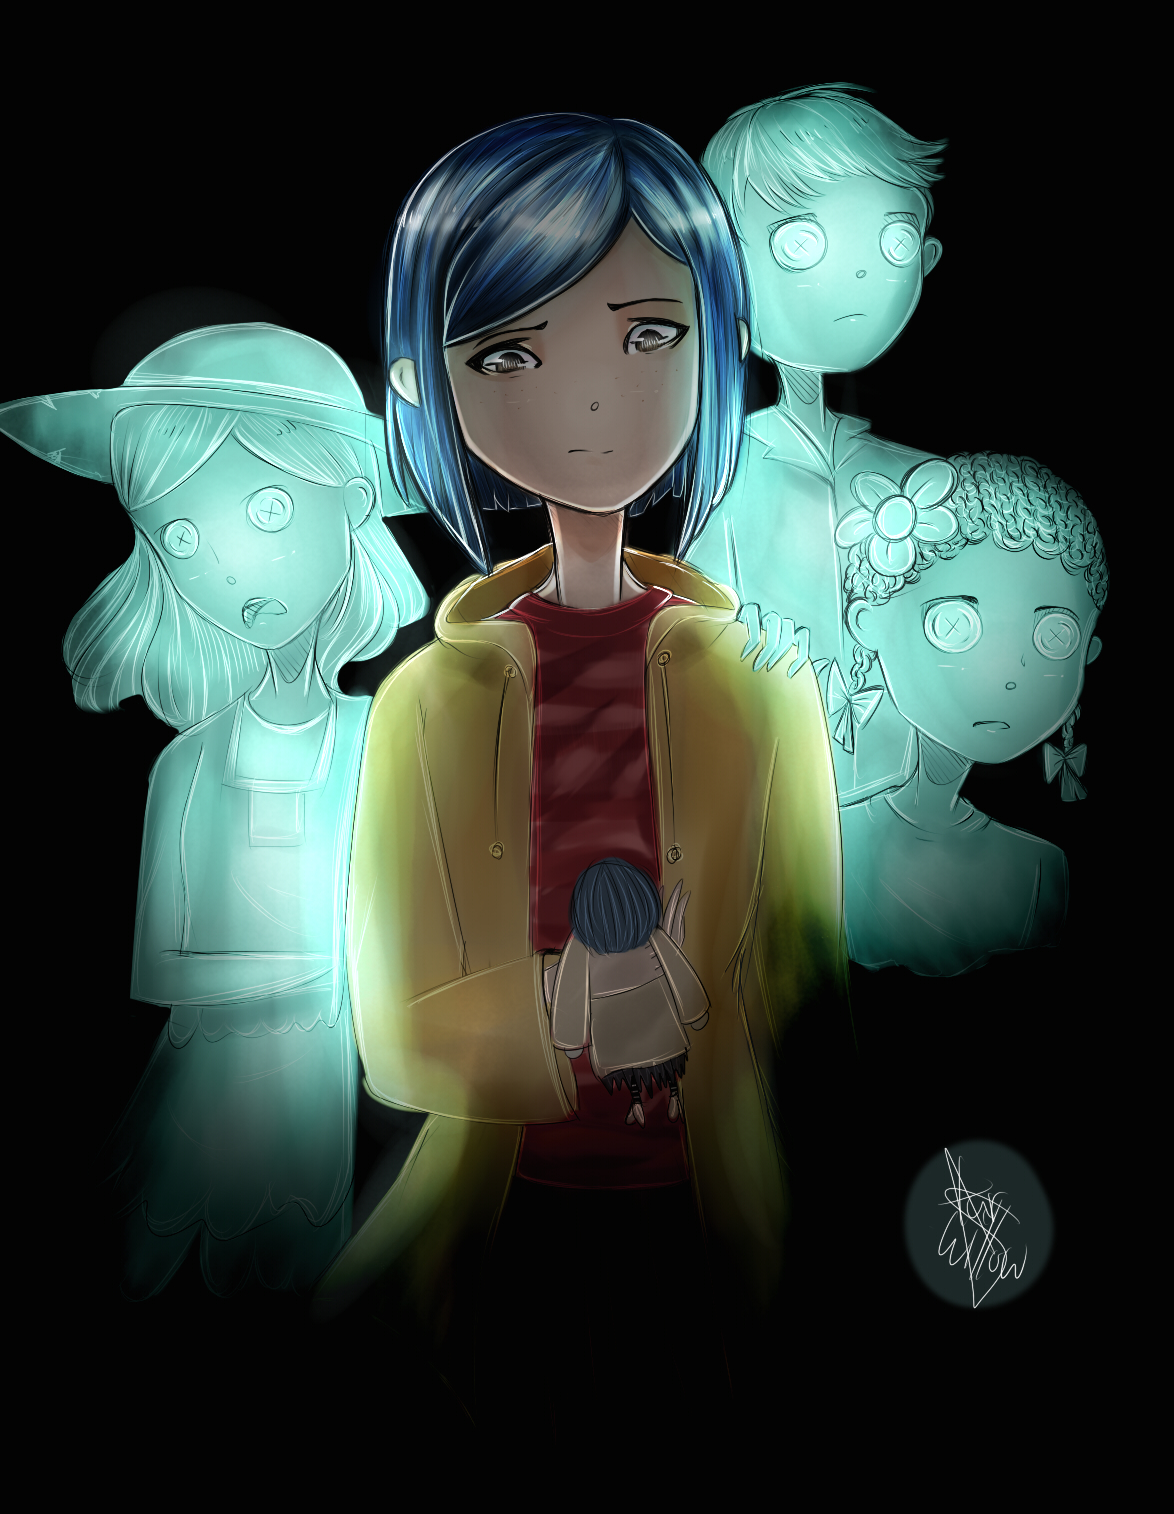 Coraline Fanart Trying To Use Sai By Starwillow14402 On Deviantart